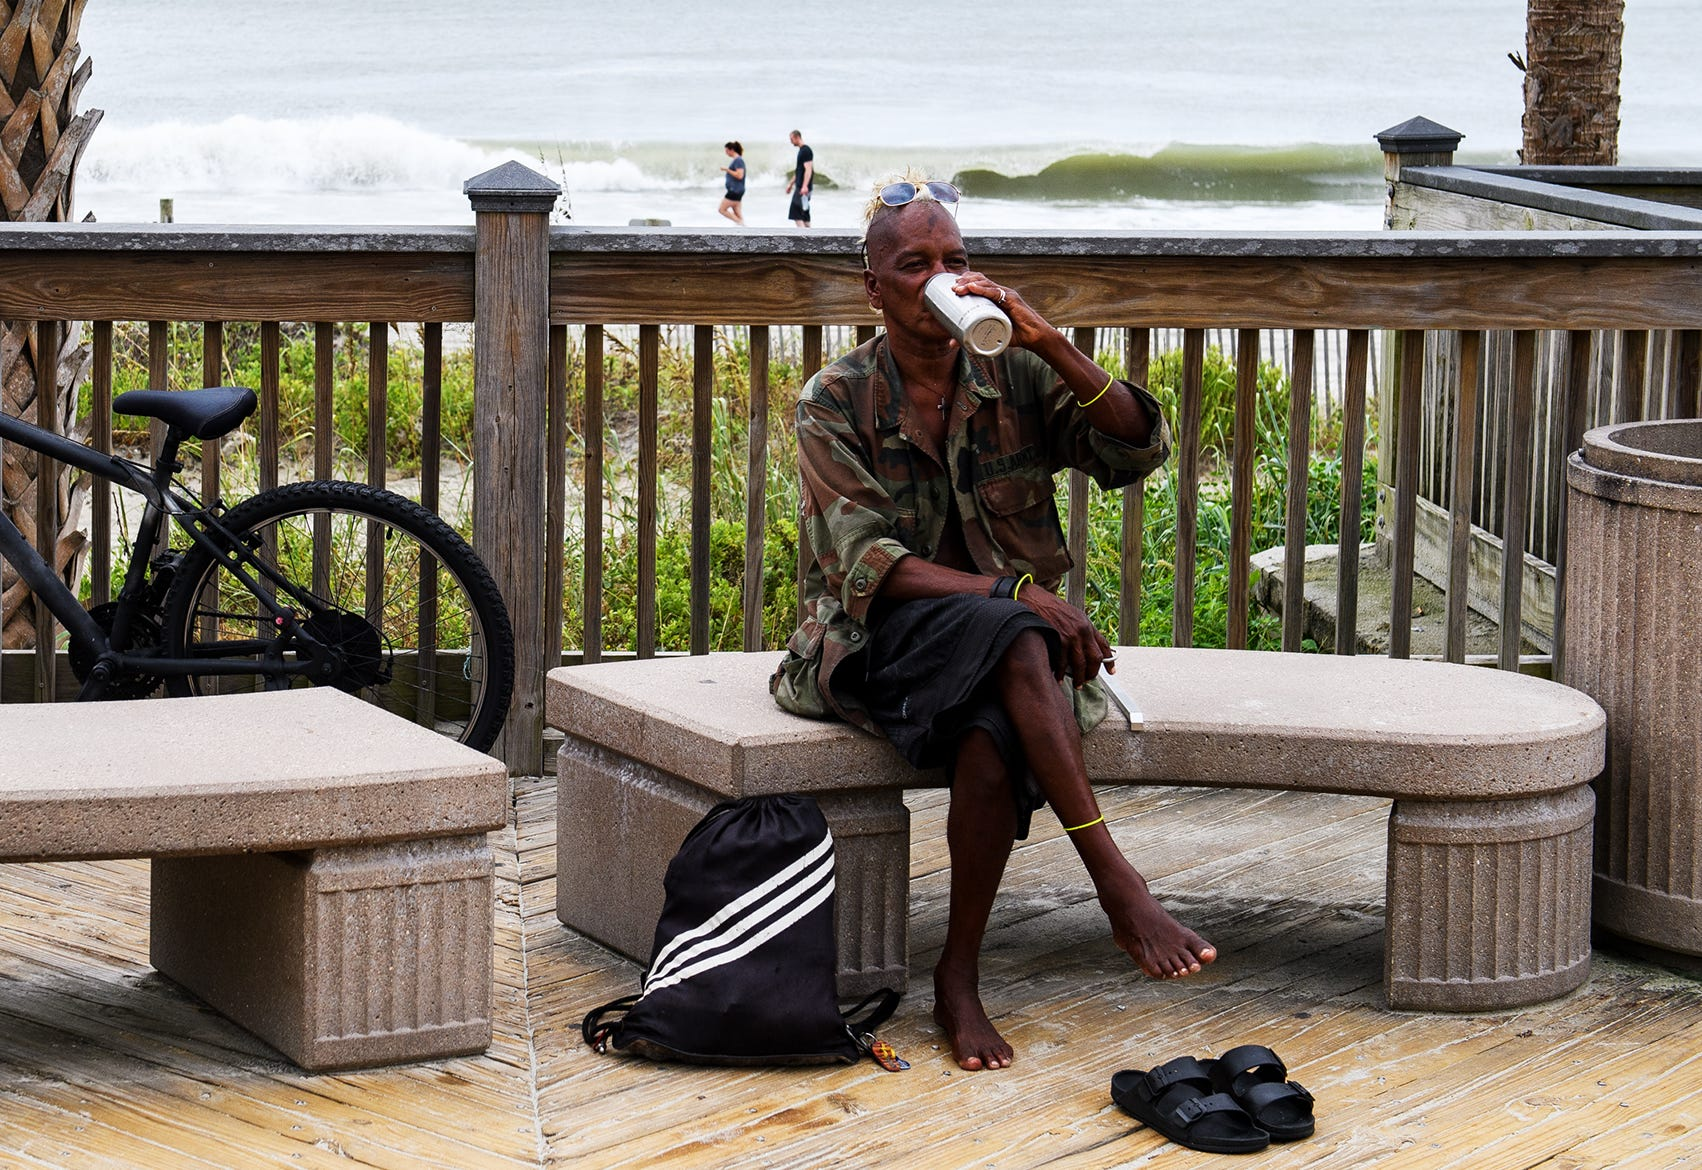 "Shane ""Rooster"" Bacchus, a homeless man living in Myrtle Beach, S.C., takes a drink from his water bottle at the Myrtle Beach Boardwalk and Promenade on Sept. 13, 2018. Bacchus said he will be sleeping in a truck during Hurricane Florence."